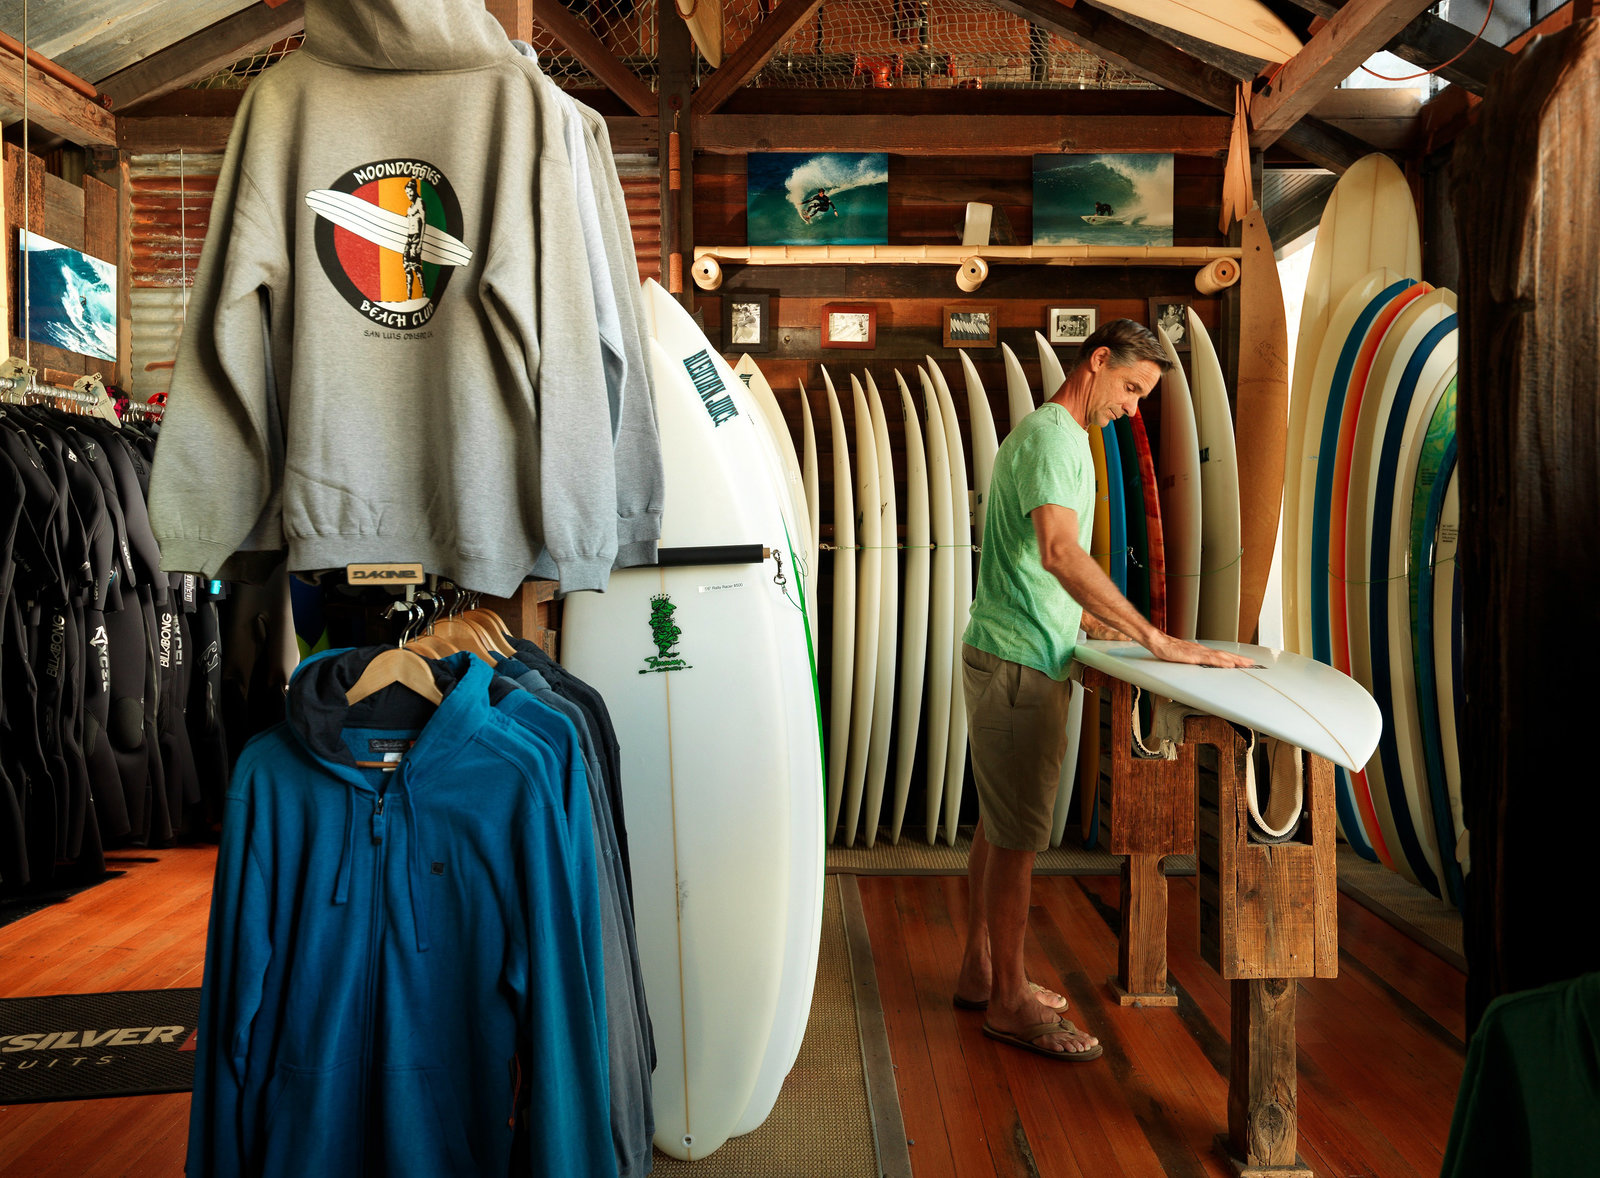 Interior of Moondoggies Surf Shop with man shaping surfboard and racks of surfboards along walls